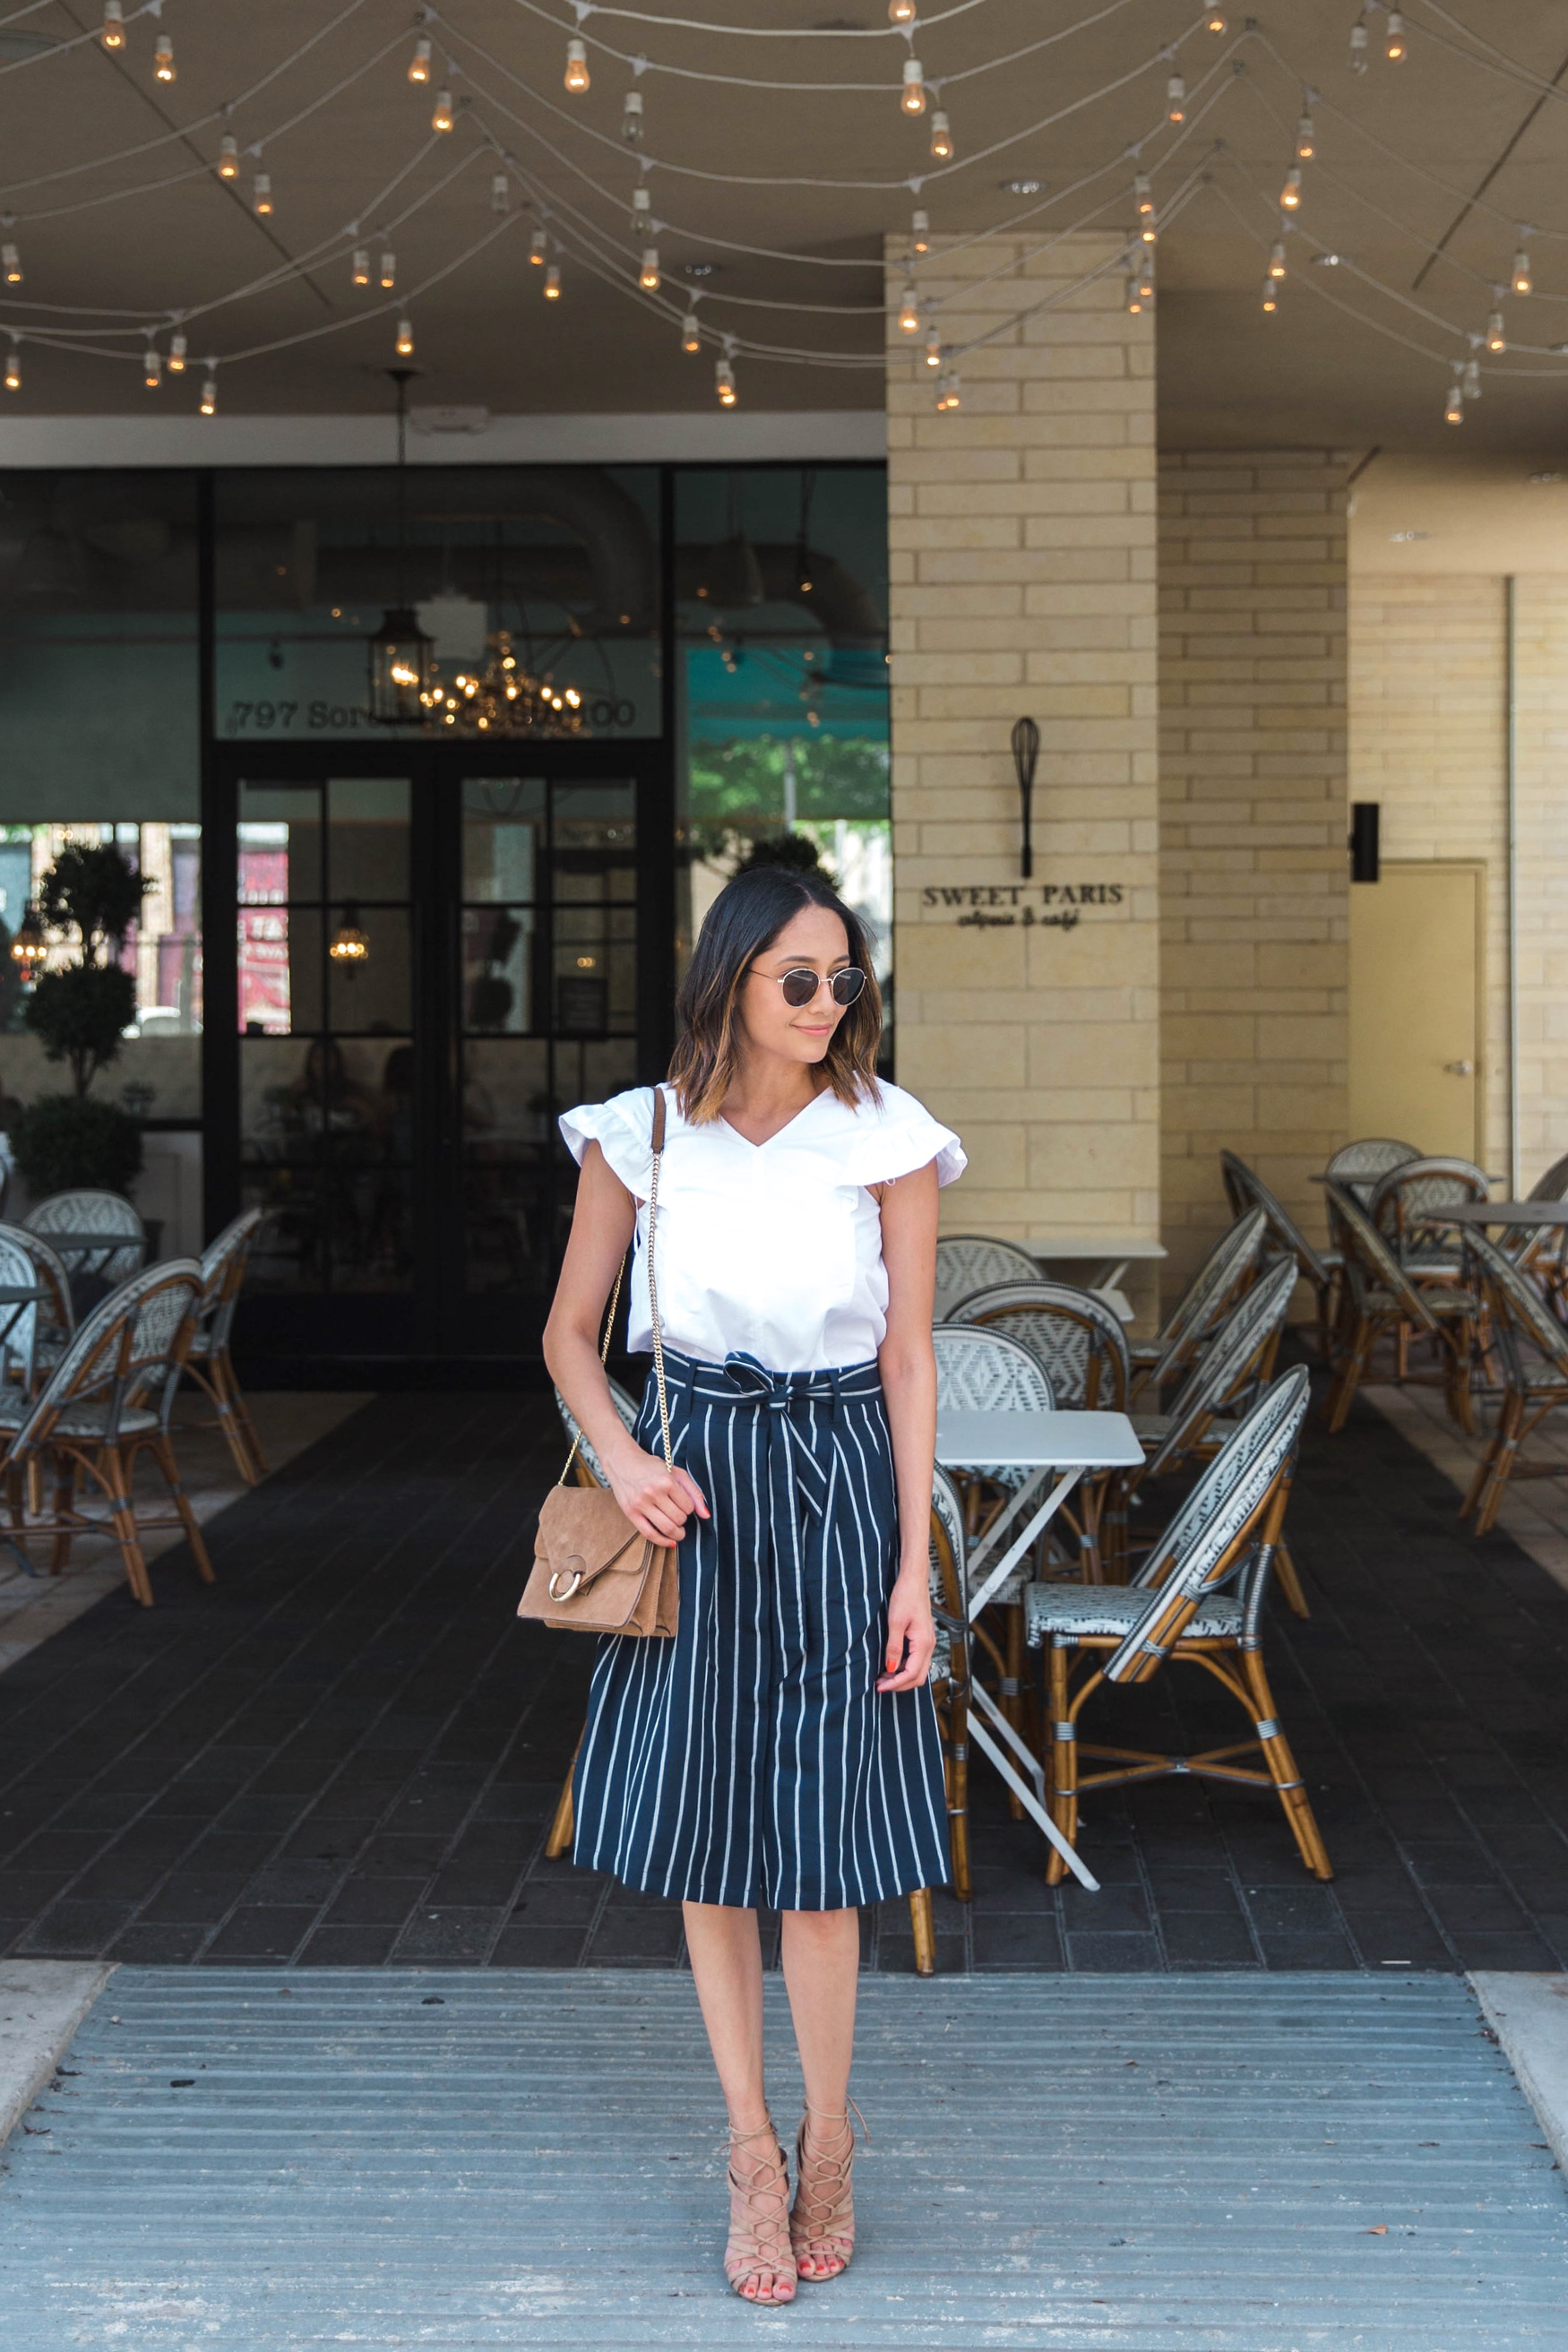 Ruffle Sleeves | Striped Skirt